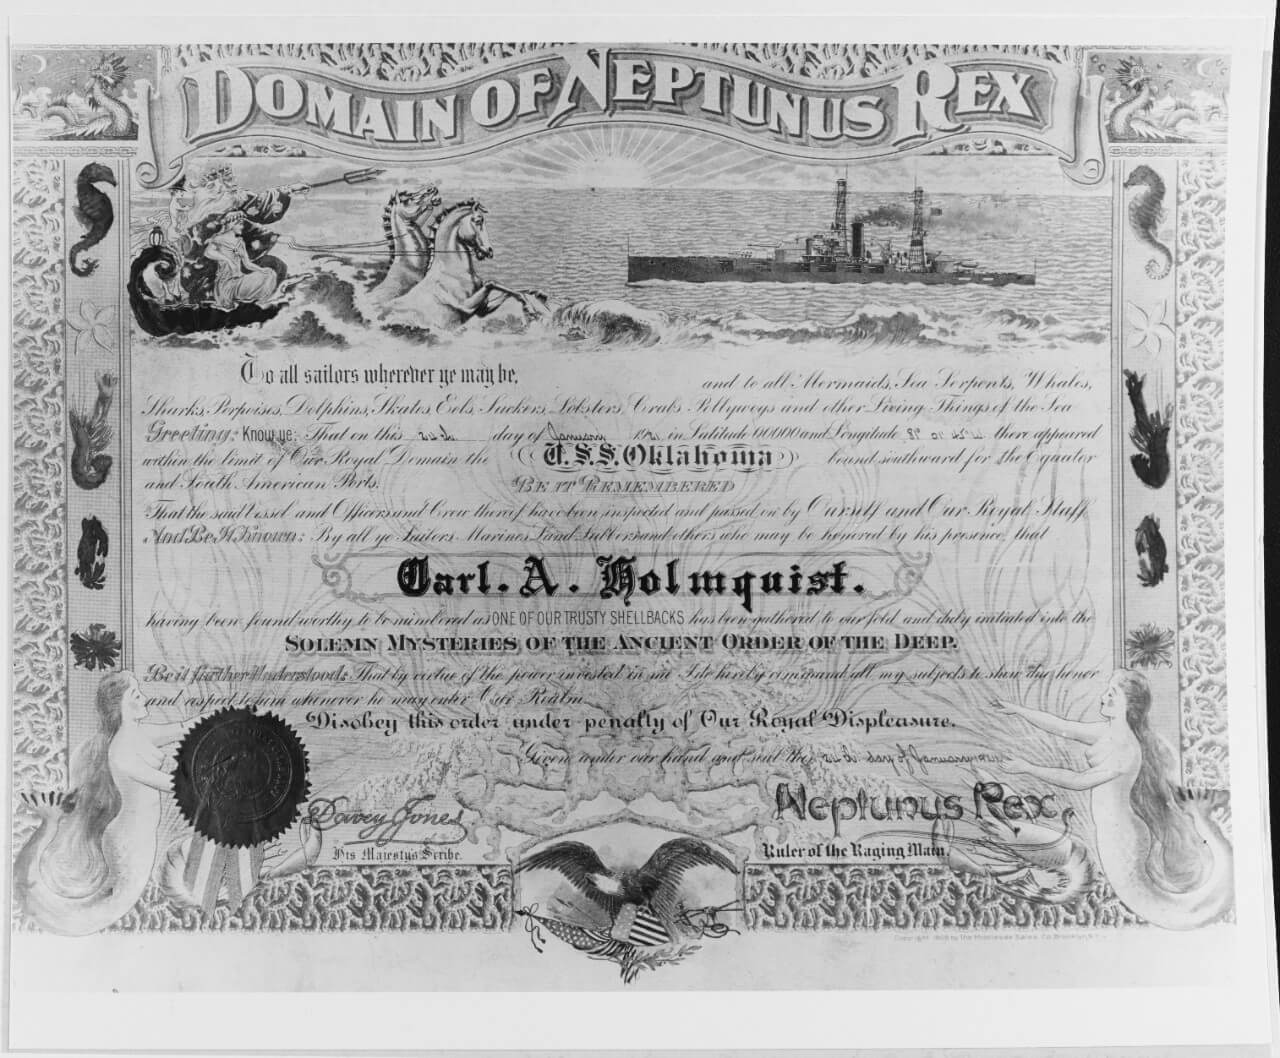 Unofficial Navy Certificates For Crossing The Line With Crossing The Line Certificate Template